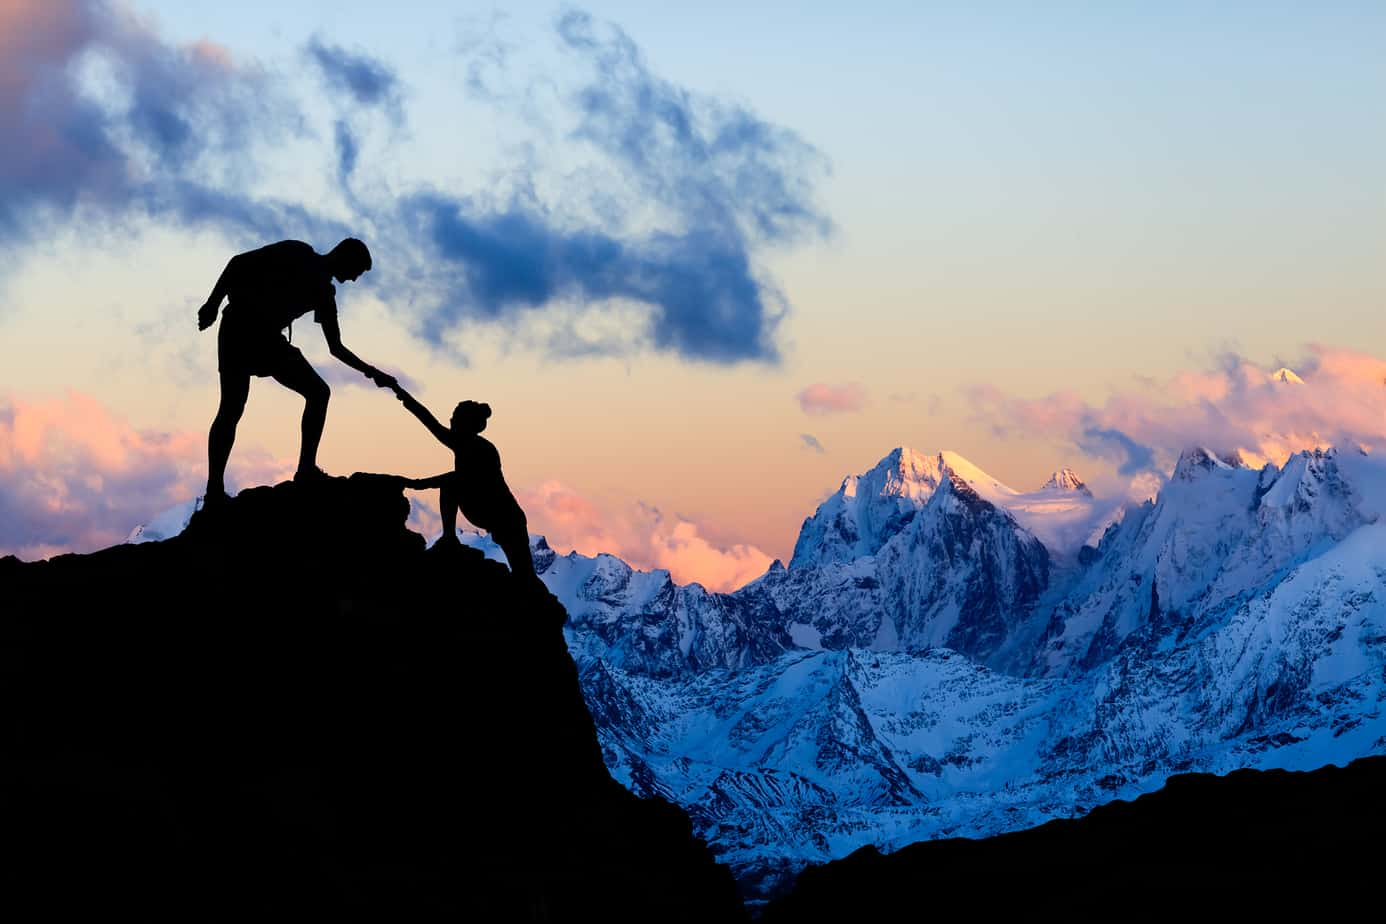 instagram captions for travel- inspiring image of couple silhouetted against tall snowy mountain backdrop, helping one another climb up